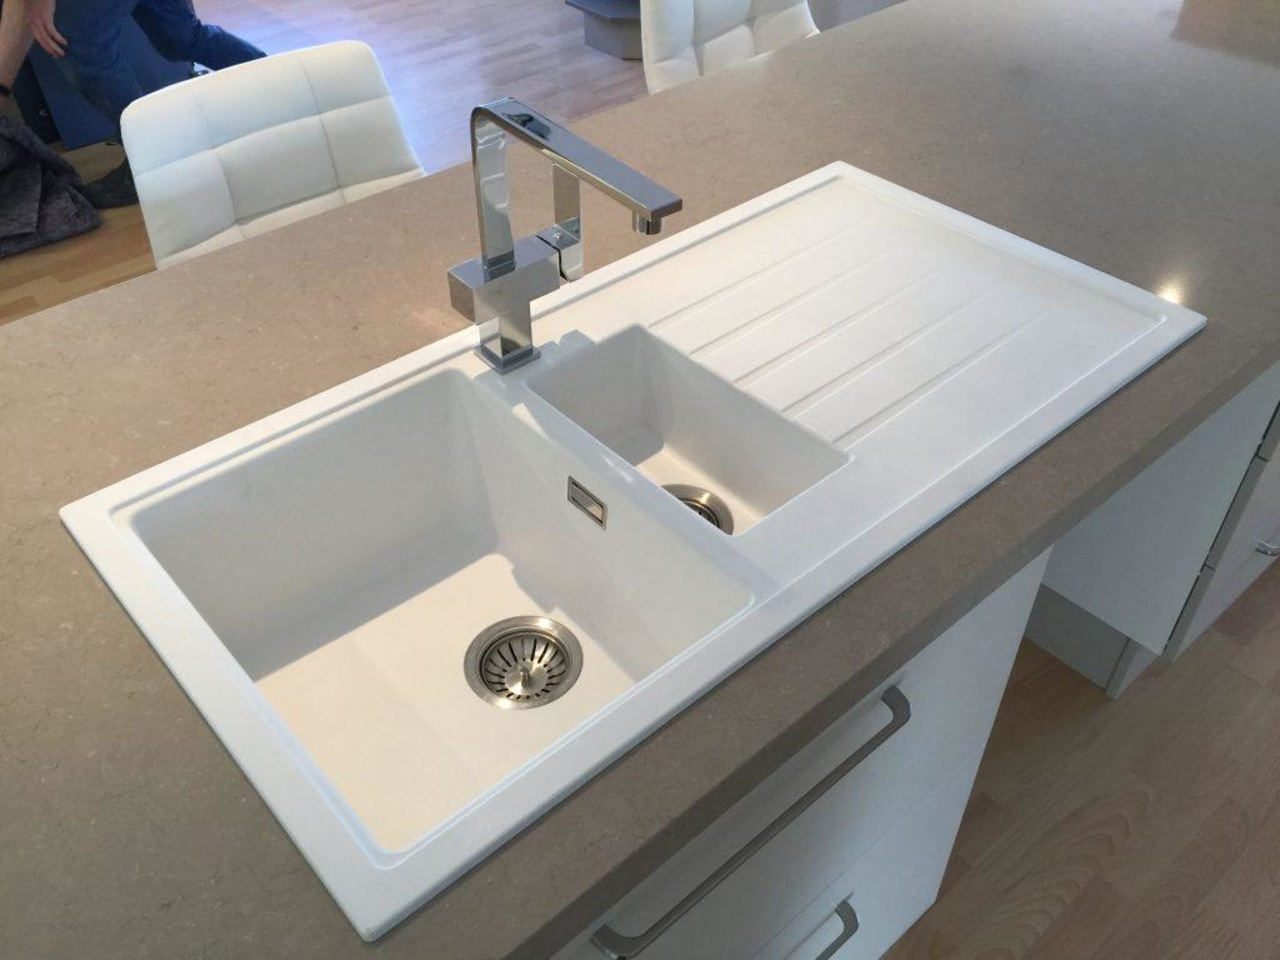 This twin basin sink allows you to add bathroom sink, countertop, plumbing fixture, sink, gray